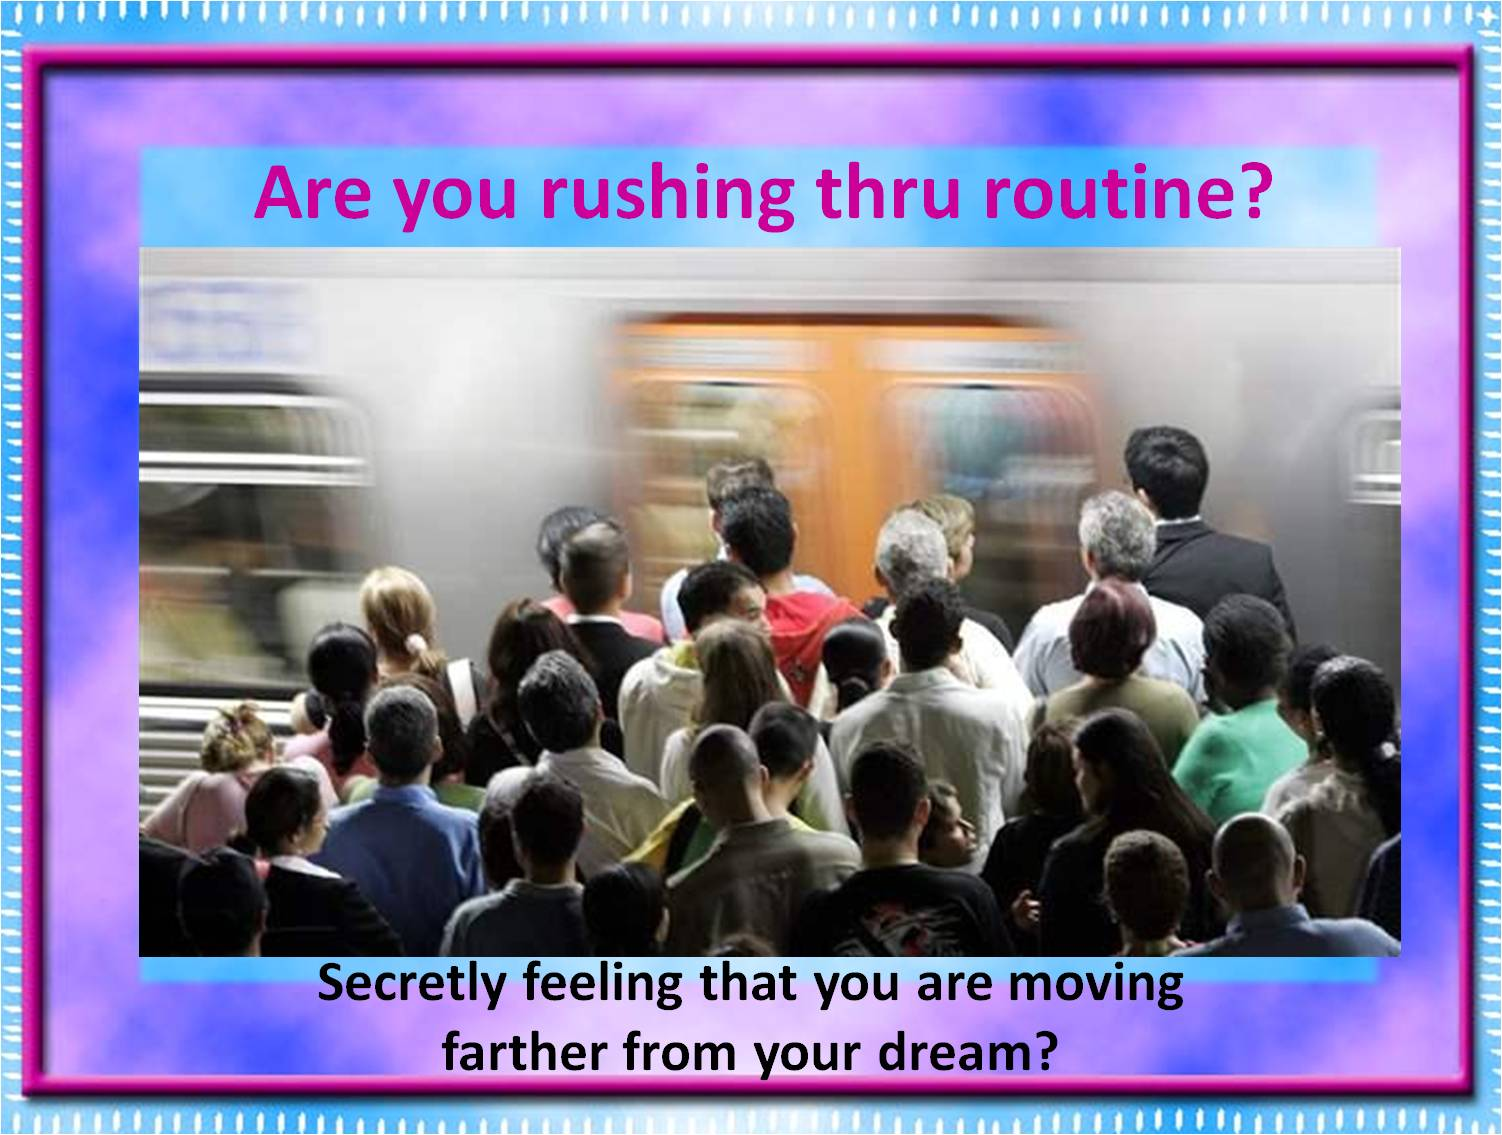 dreamexpress-virtualtourB-slide2-rushing